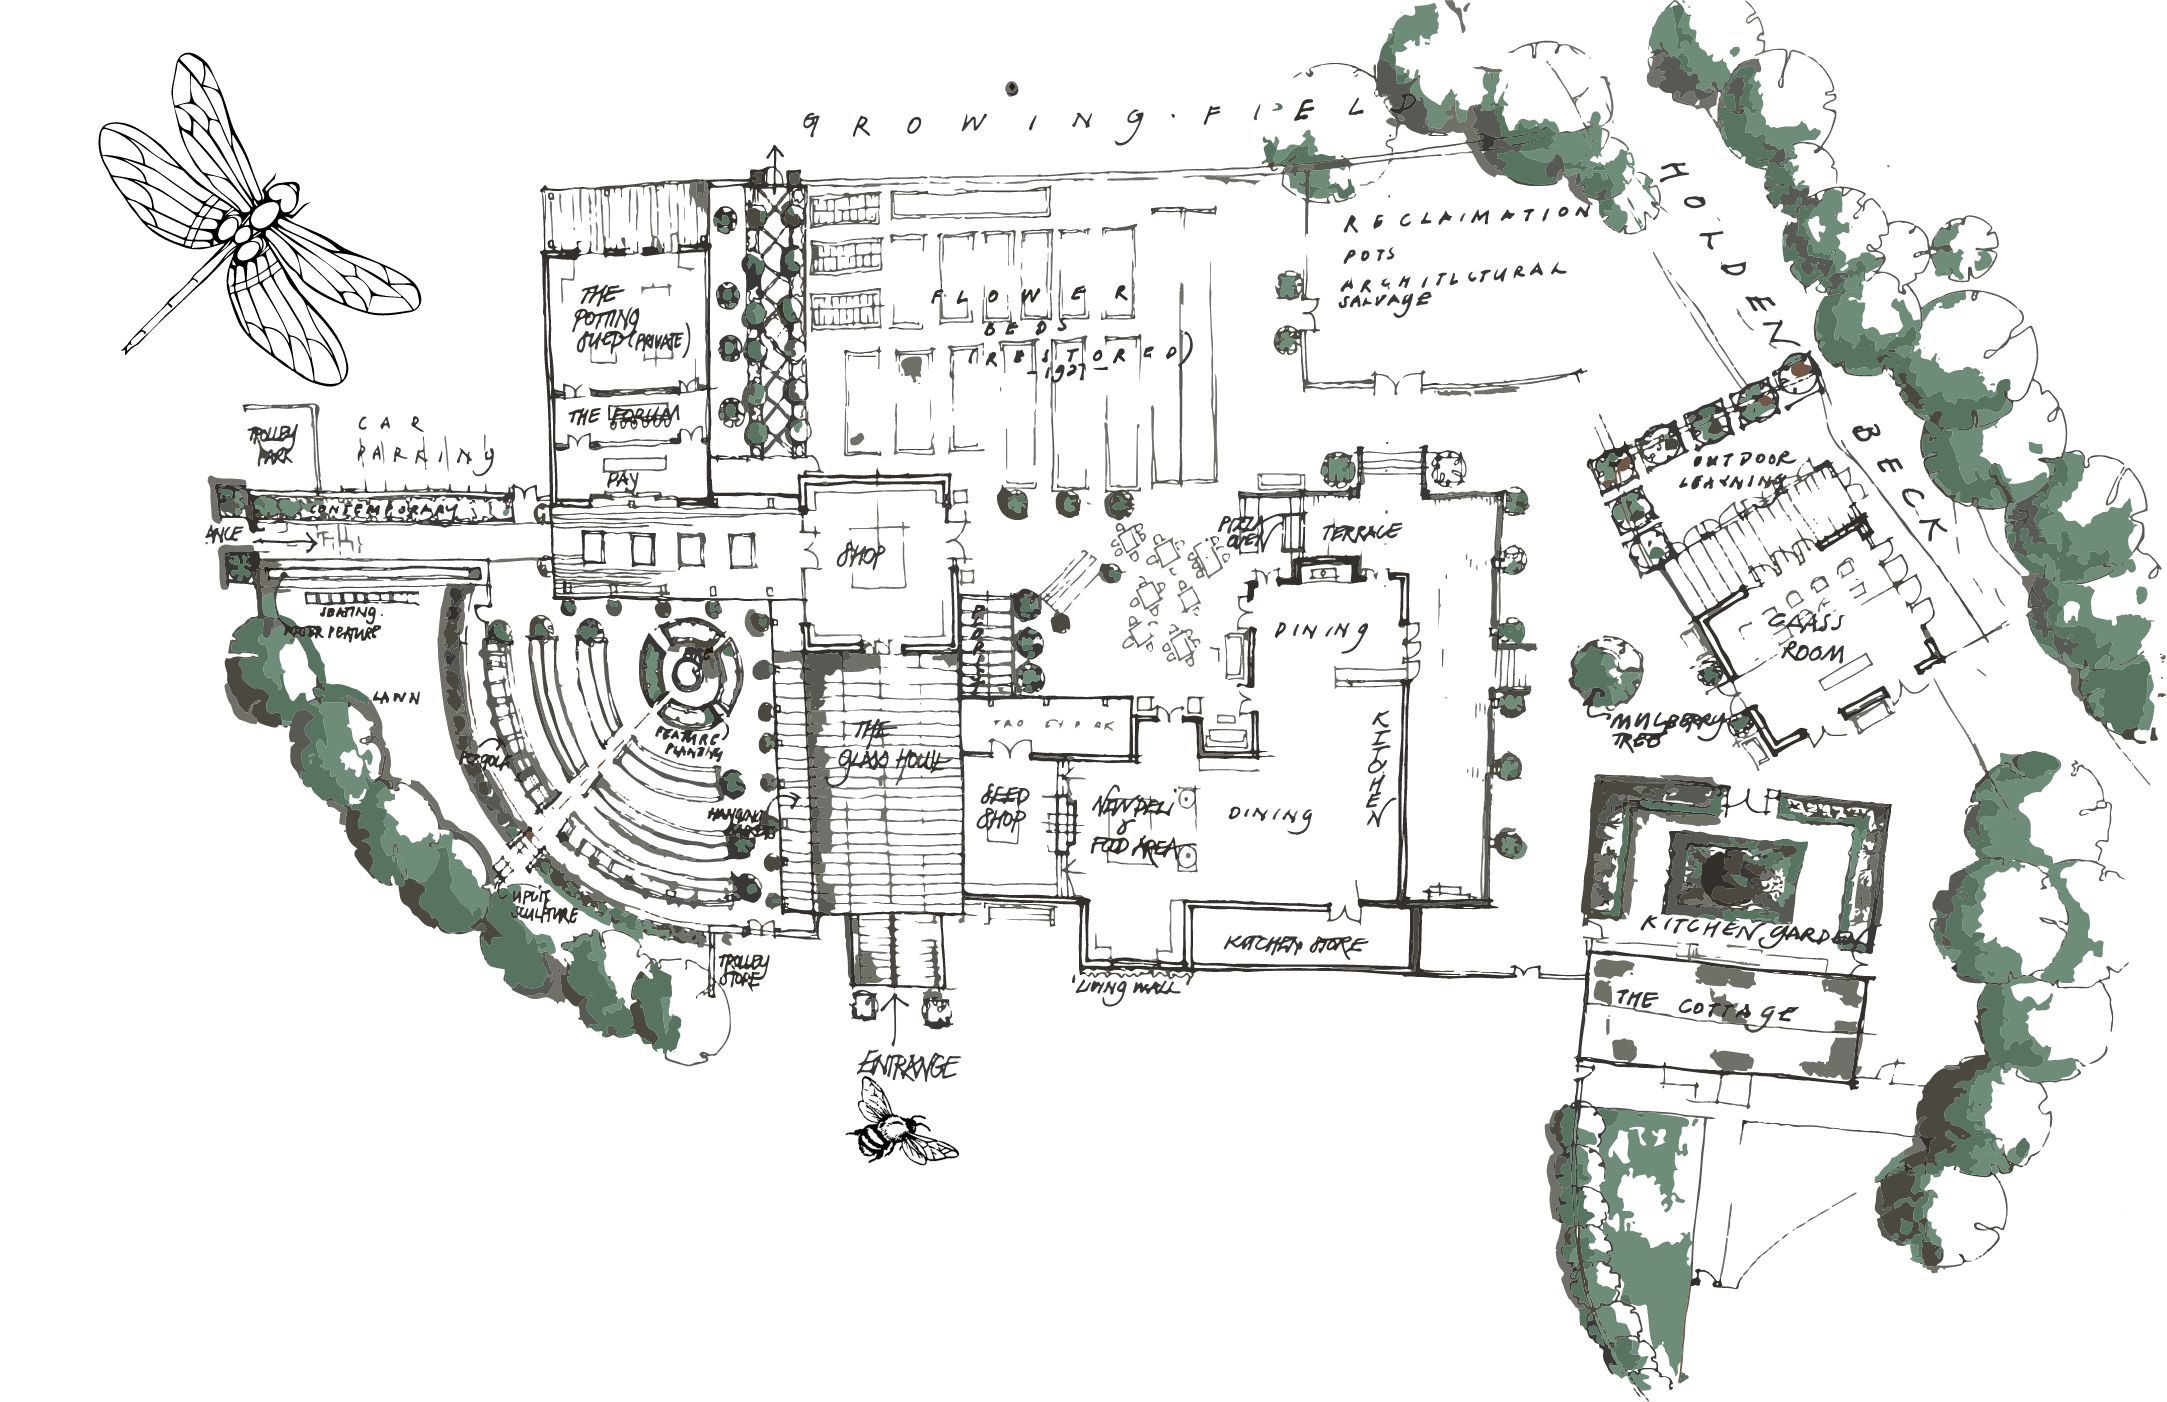 section image